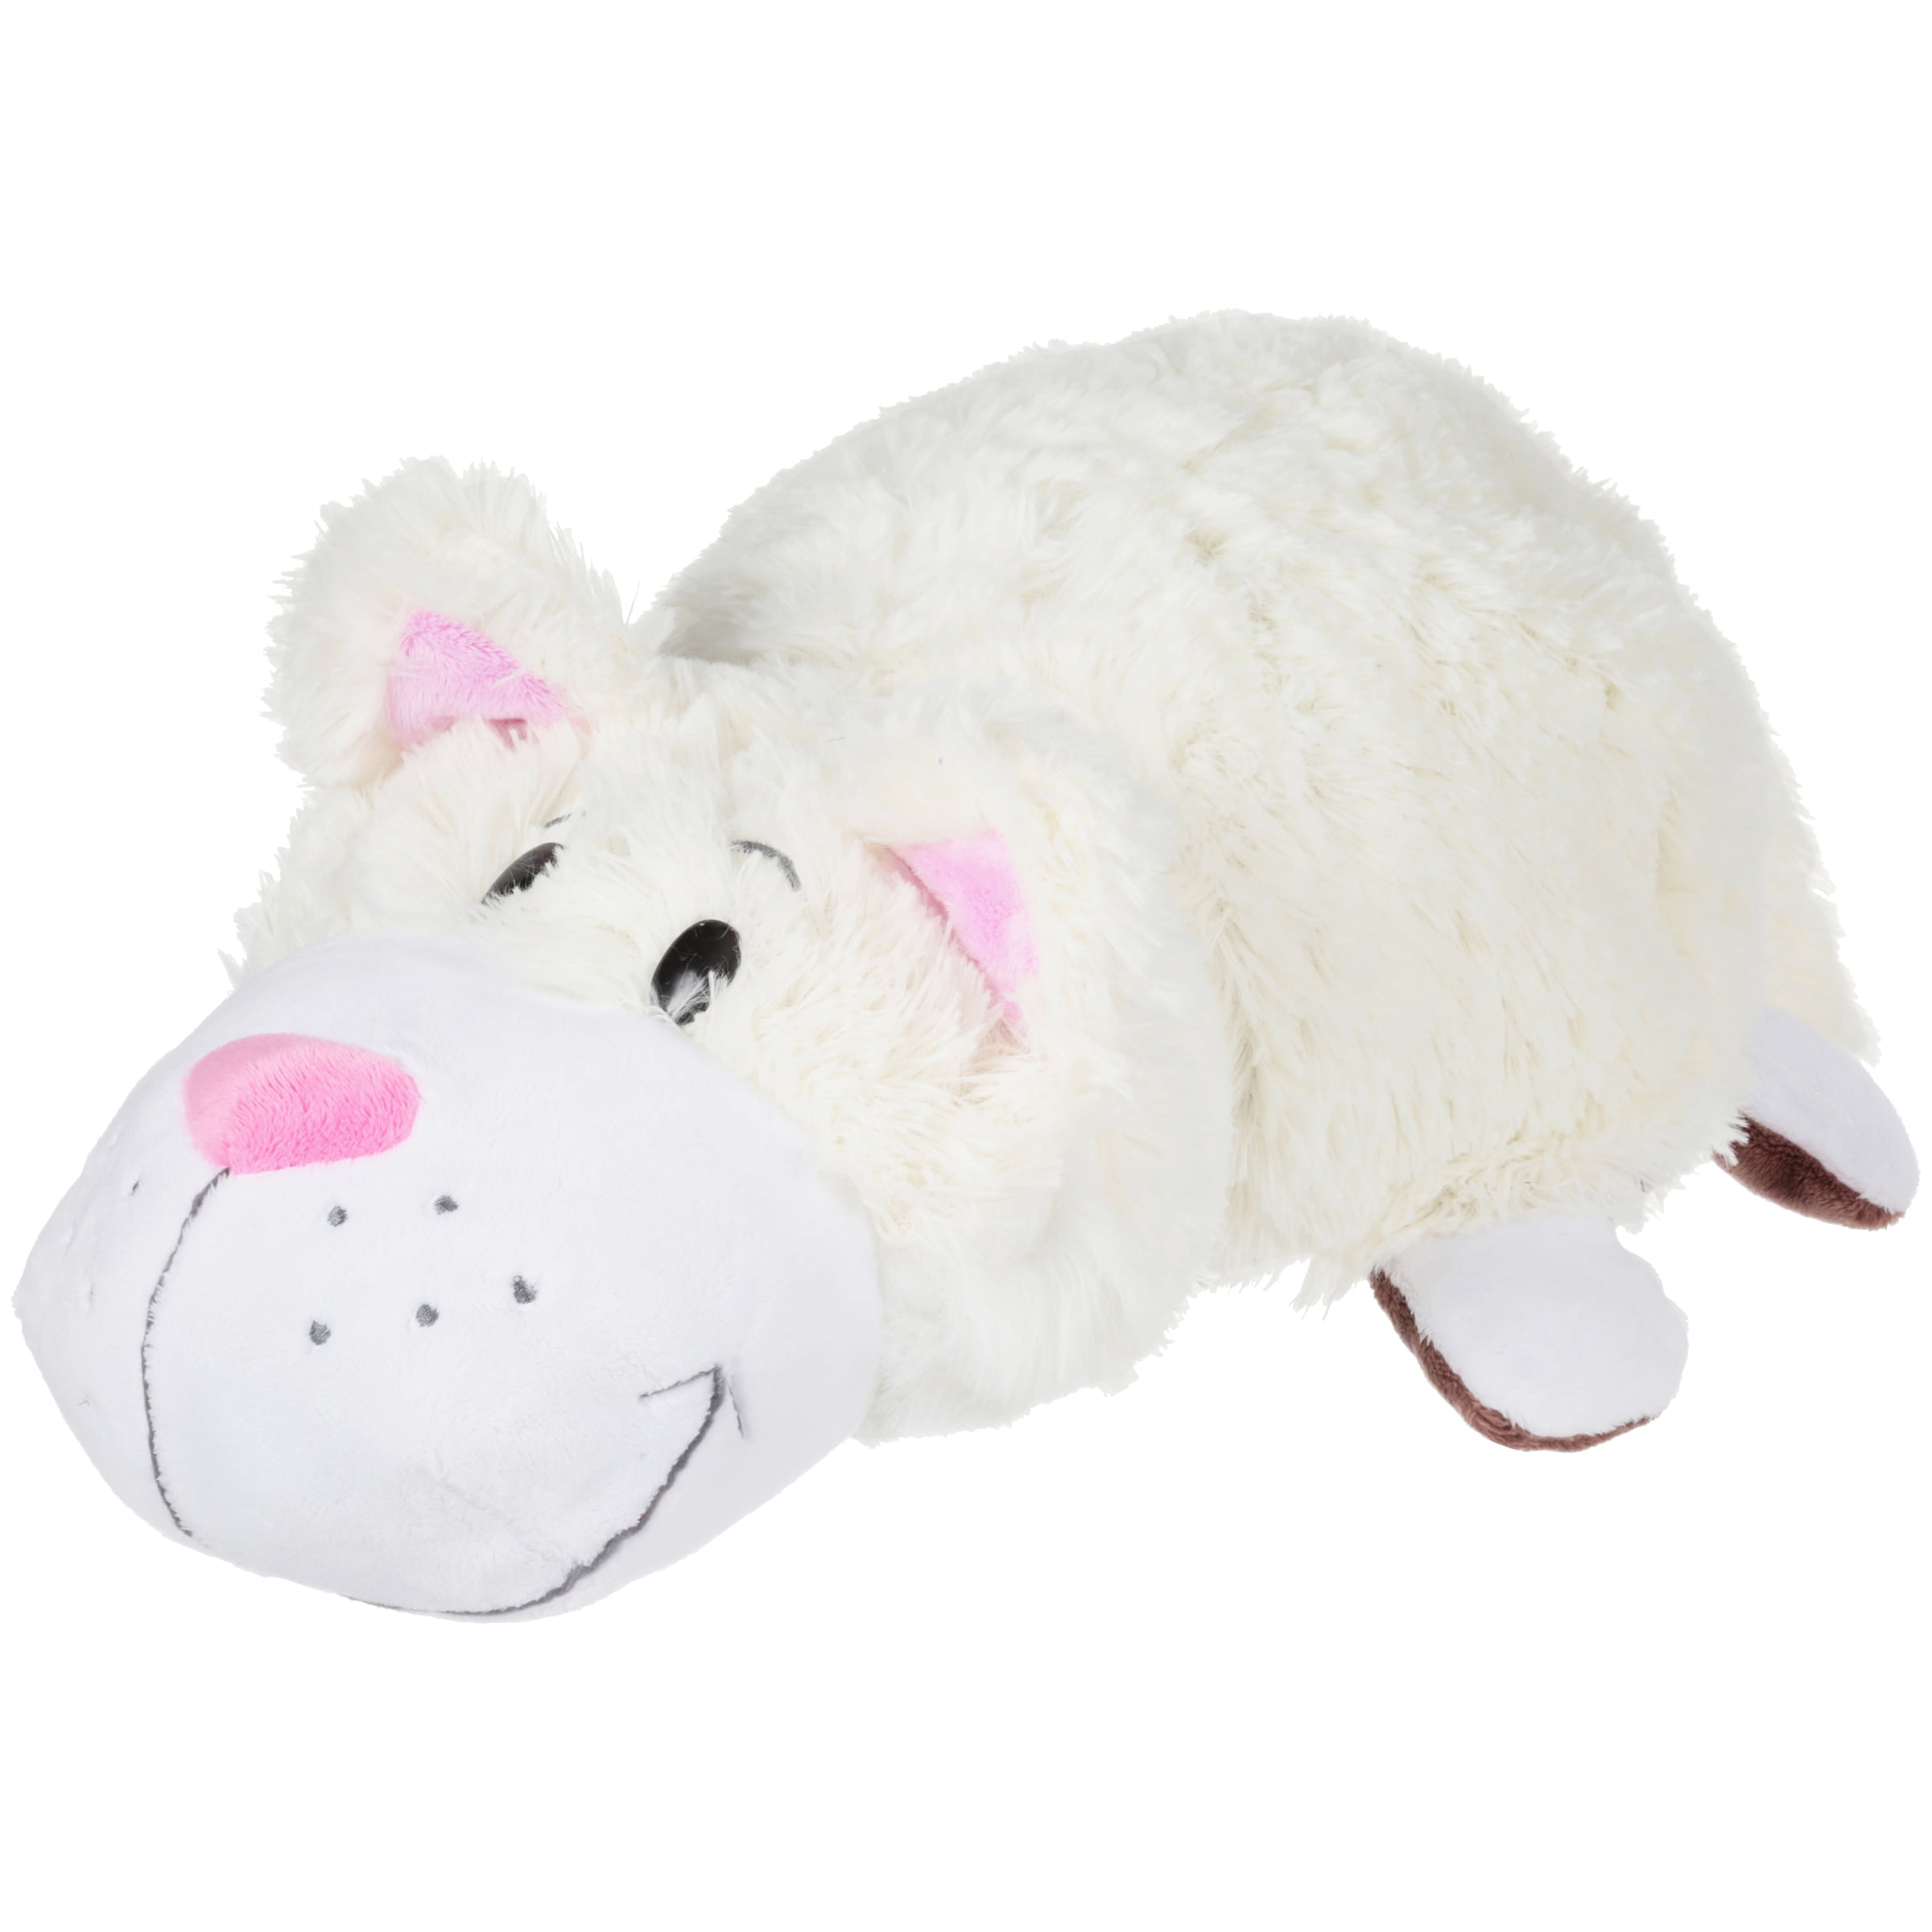 16 Chocolate Lab To White Cat Flipazoo 2 In 1 Plush Walmart Com